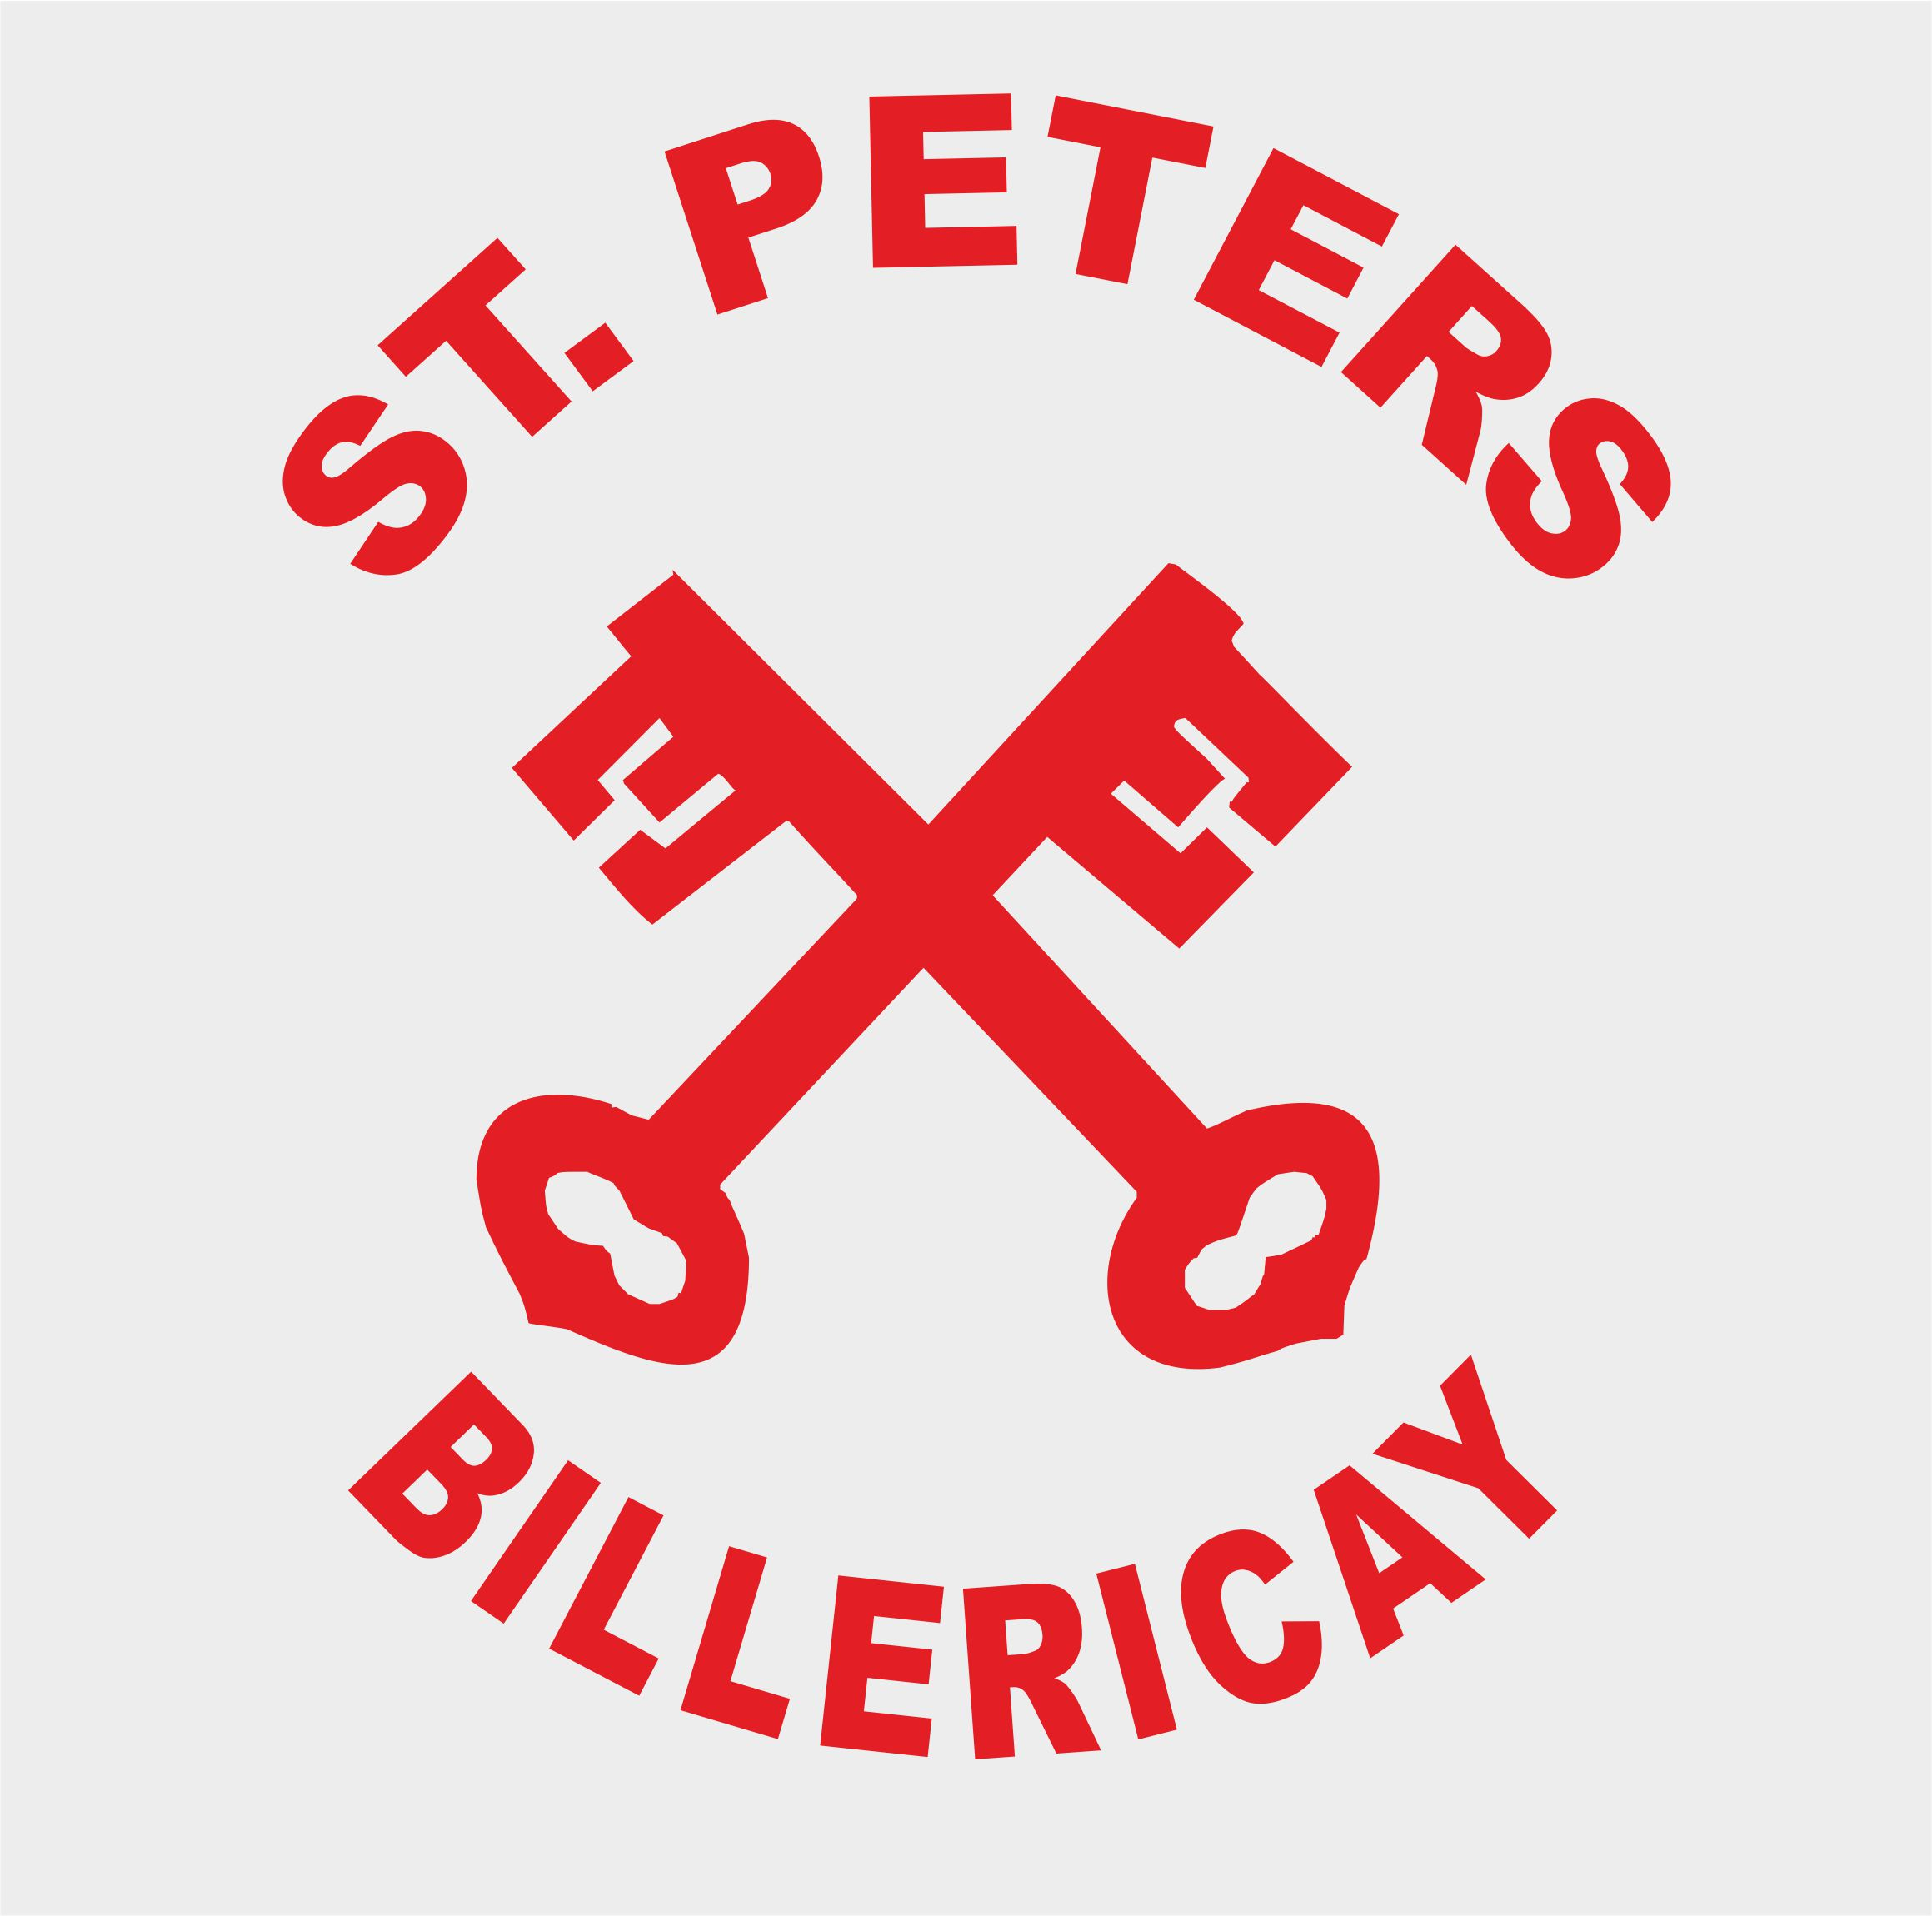 st peters LOGO 2.jpg